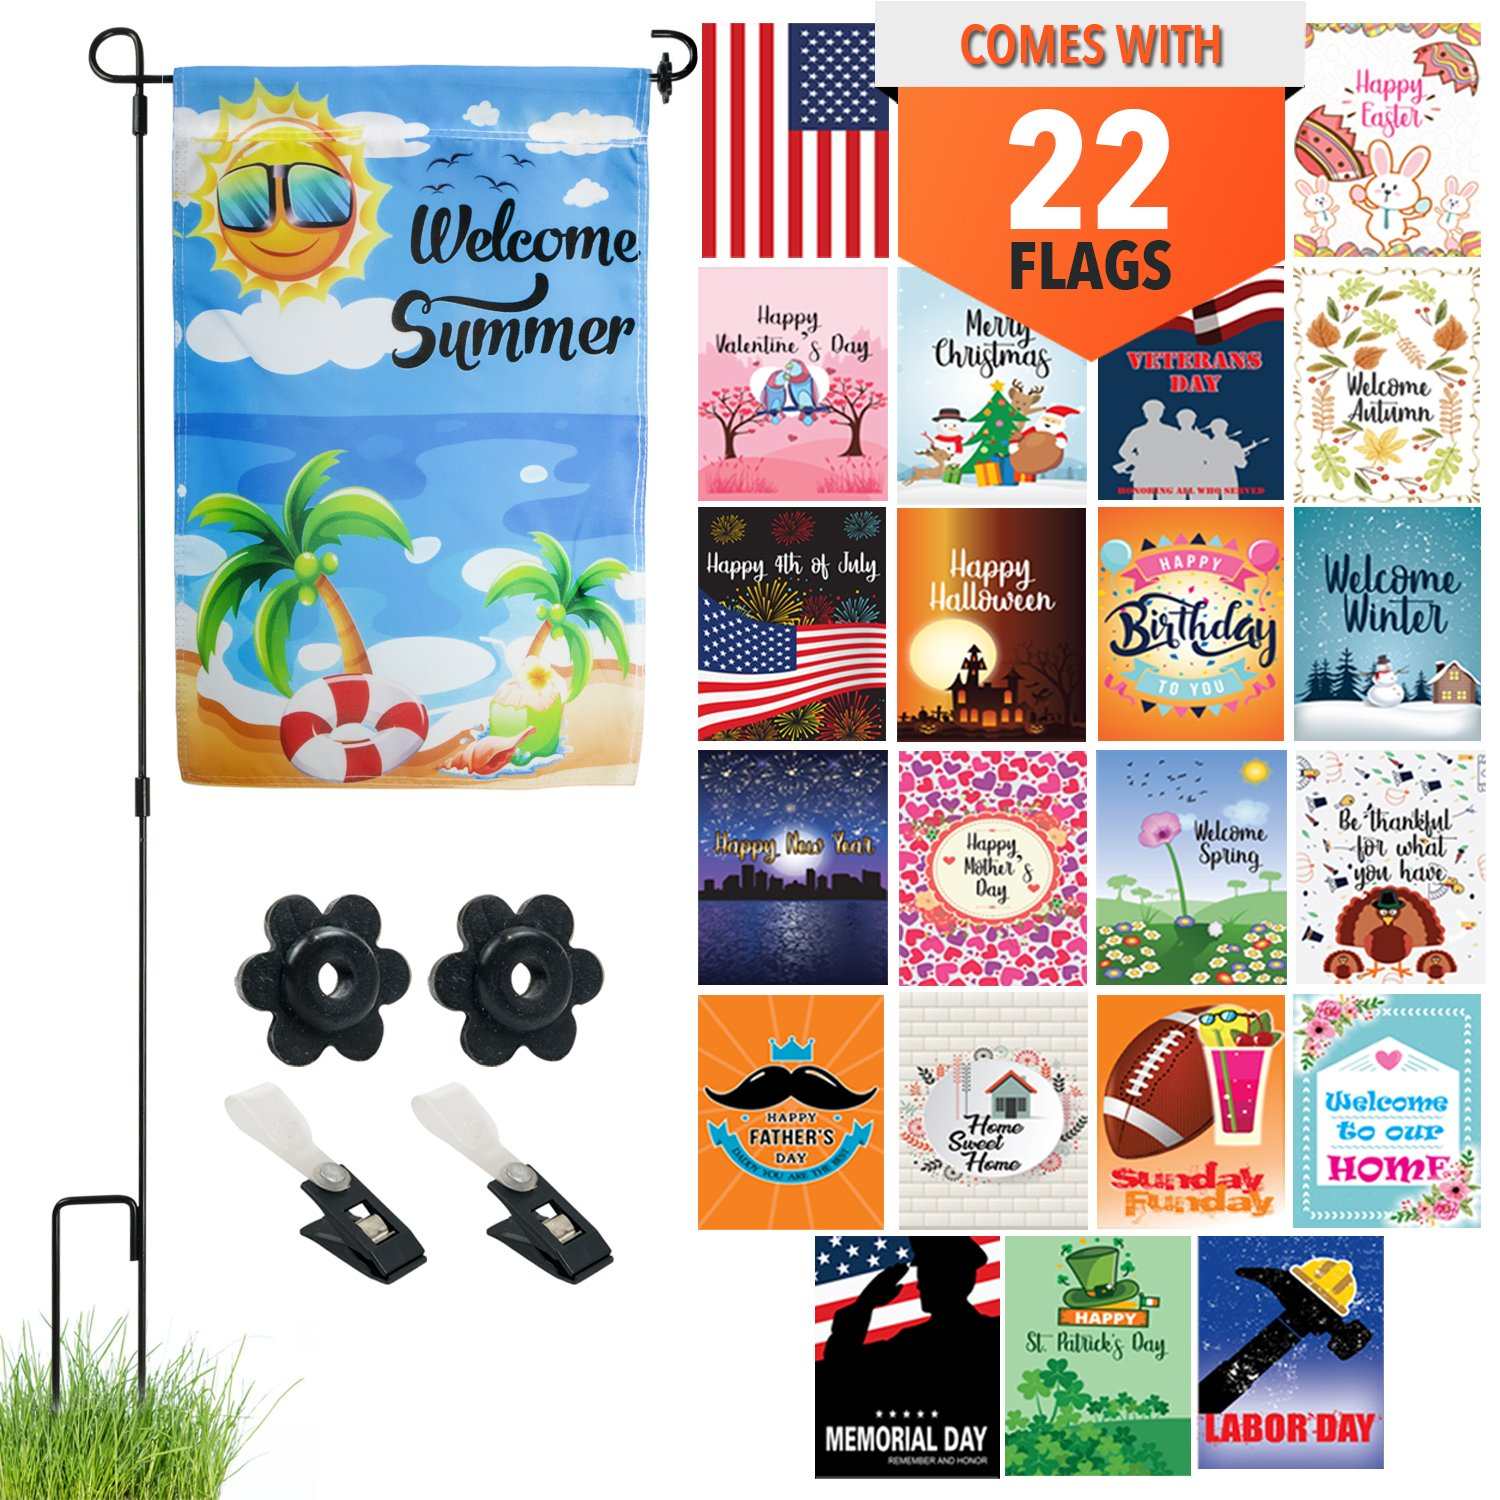 Seasonal Garden Flag Set of 22 - Premium Assortment of Durable 12 Inch x 18 Inch Double Sided Weatherproof Polyester Flags, Includes Flag Pole Stand, 2 Wind Clips and 2 Rubber Stoppers For All Seasons